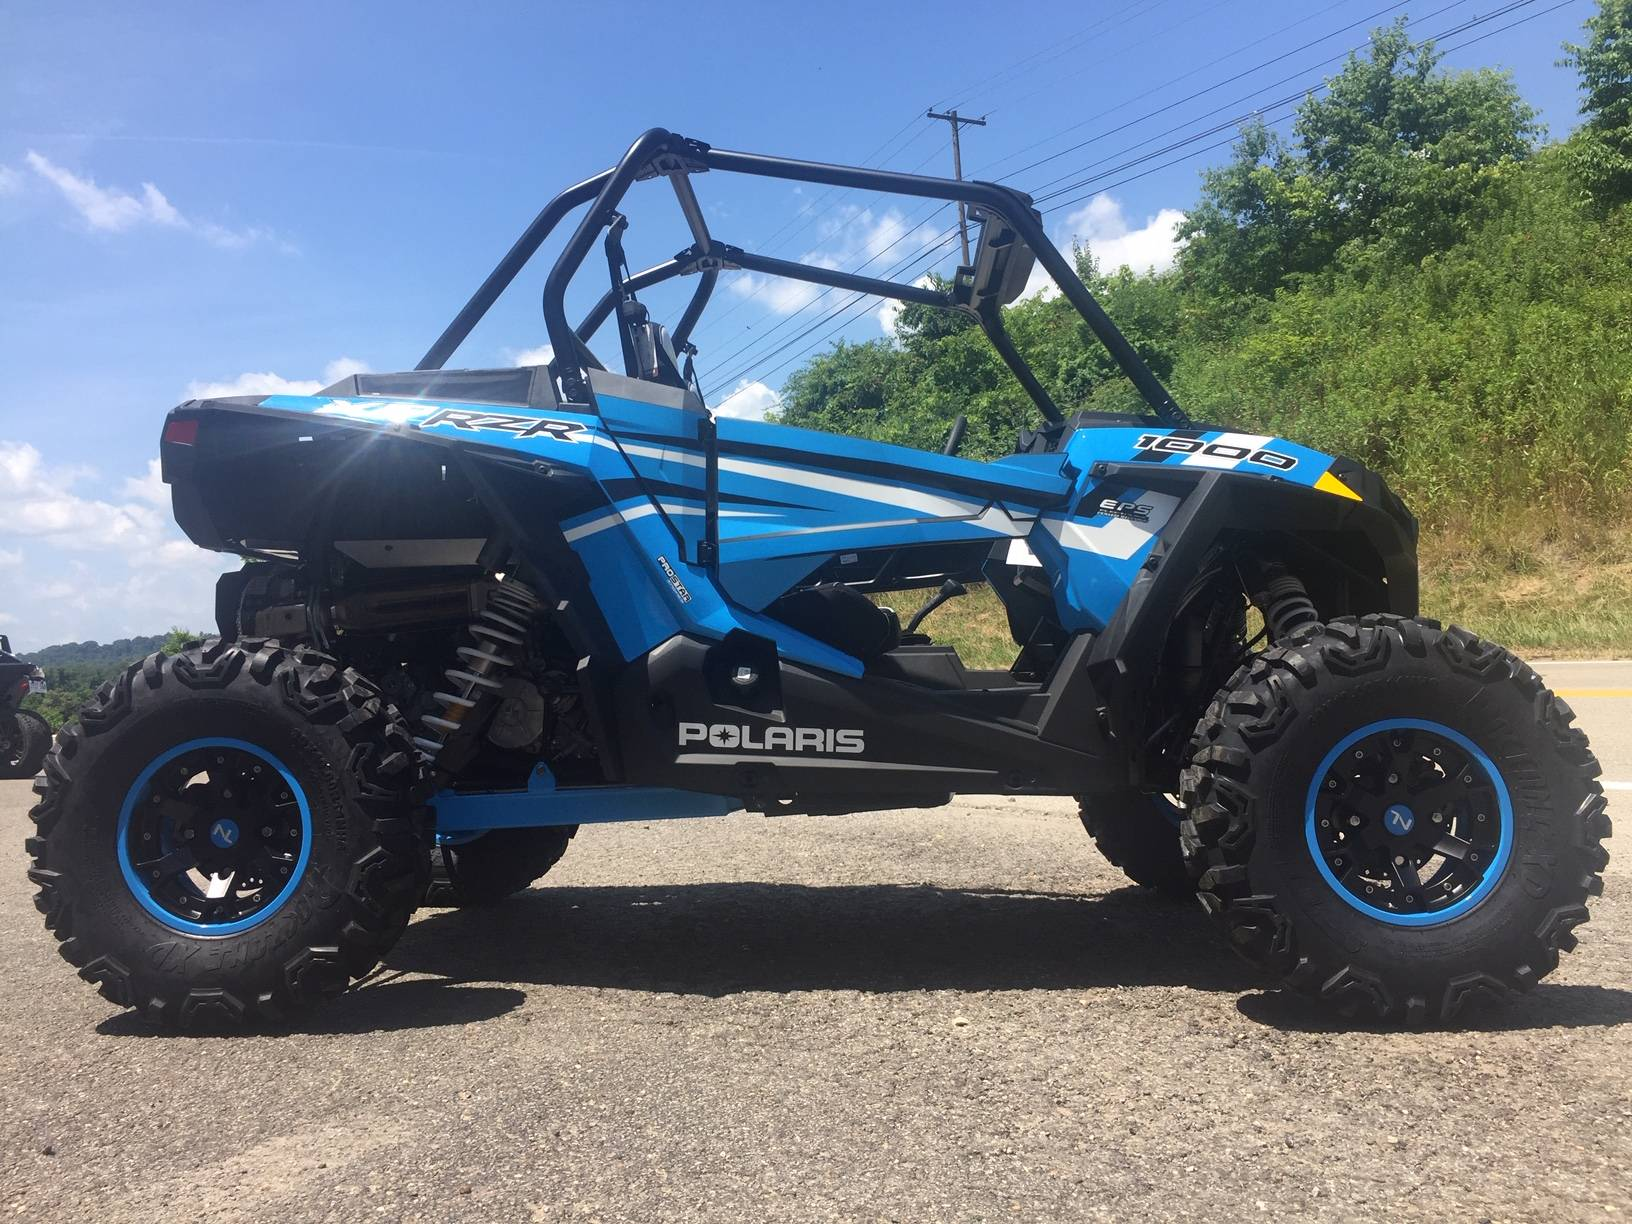 2019 Polaris RZR XP 1000 in Claysville, Pennsylvania - Photo 1